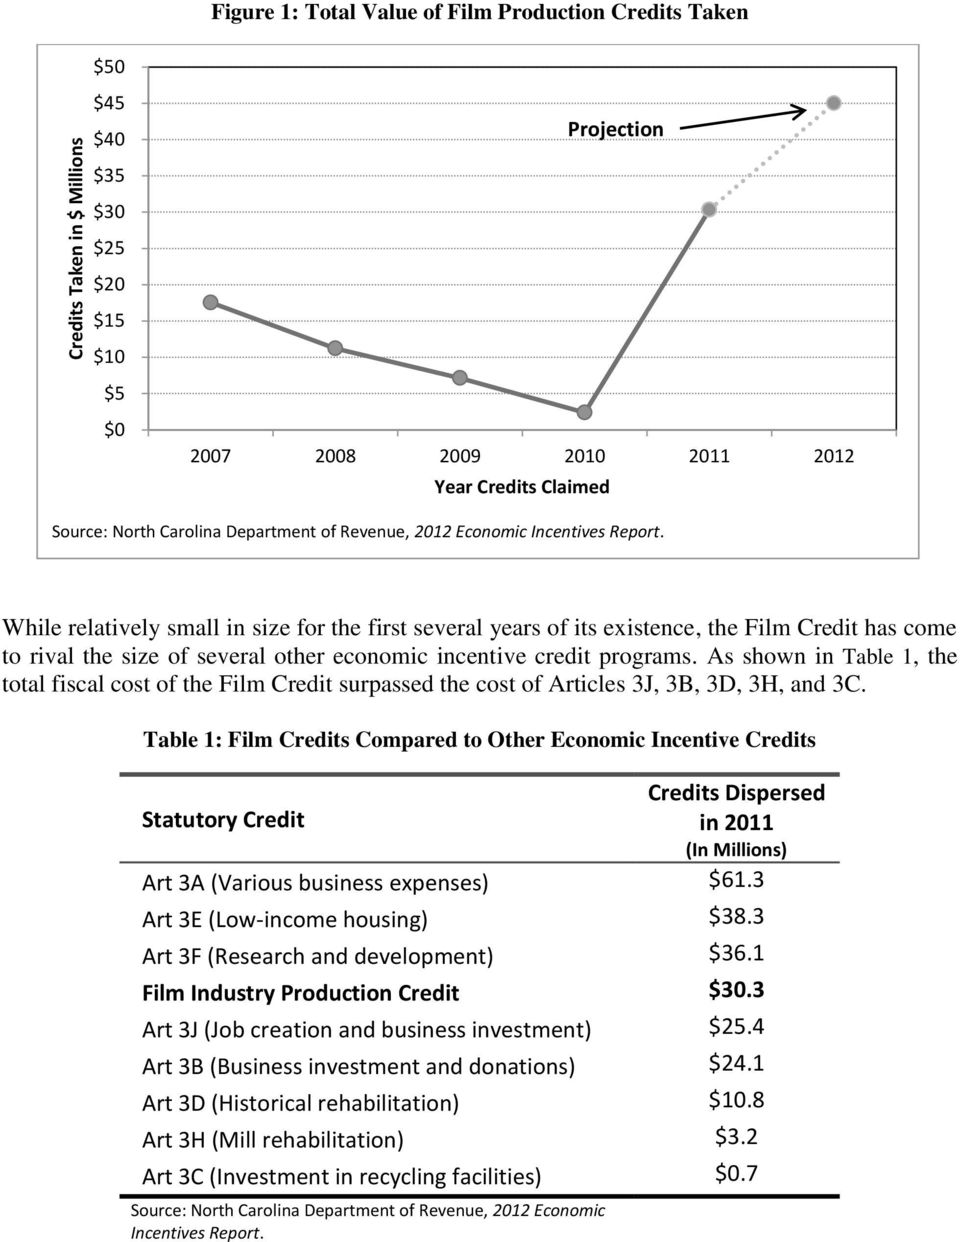 While relatively small in size for the first several years of its existence, the Film Credit has come to rival the size of several other economic incentive credit programs.